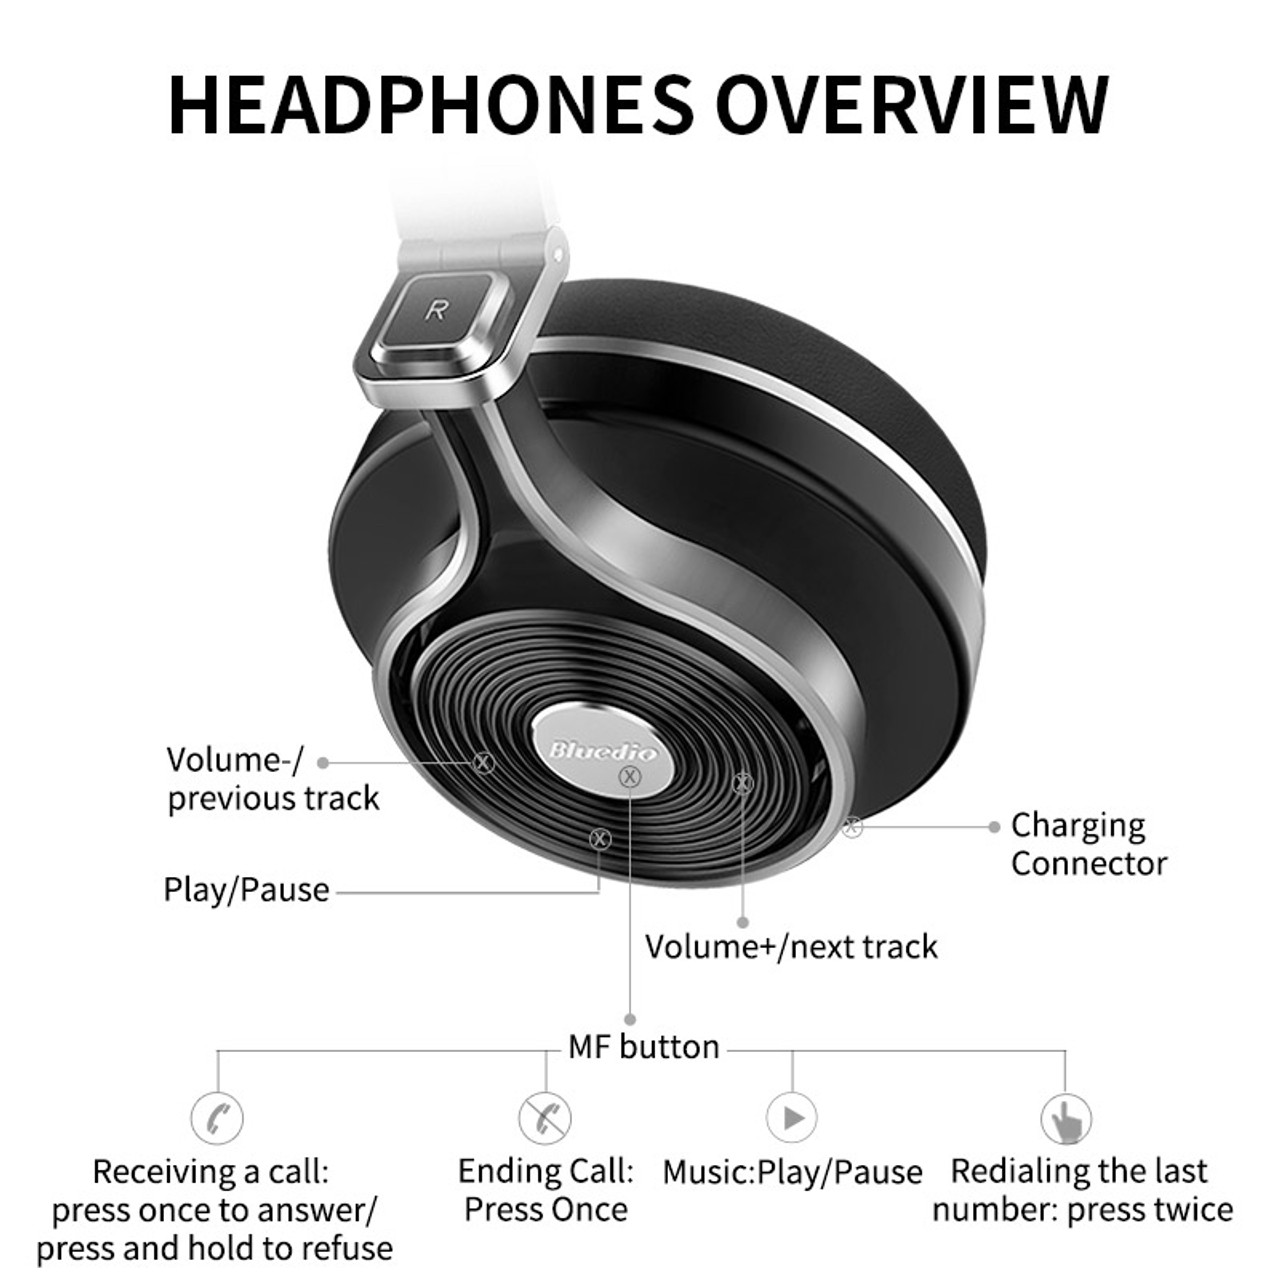 752d12bffd1 ... Bluedio T3 Wireless bluetooth Headphones/headset with Bluetooth 4.1  Stereo and microphone for music wireless ...